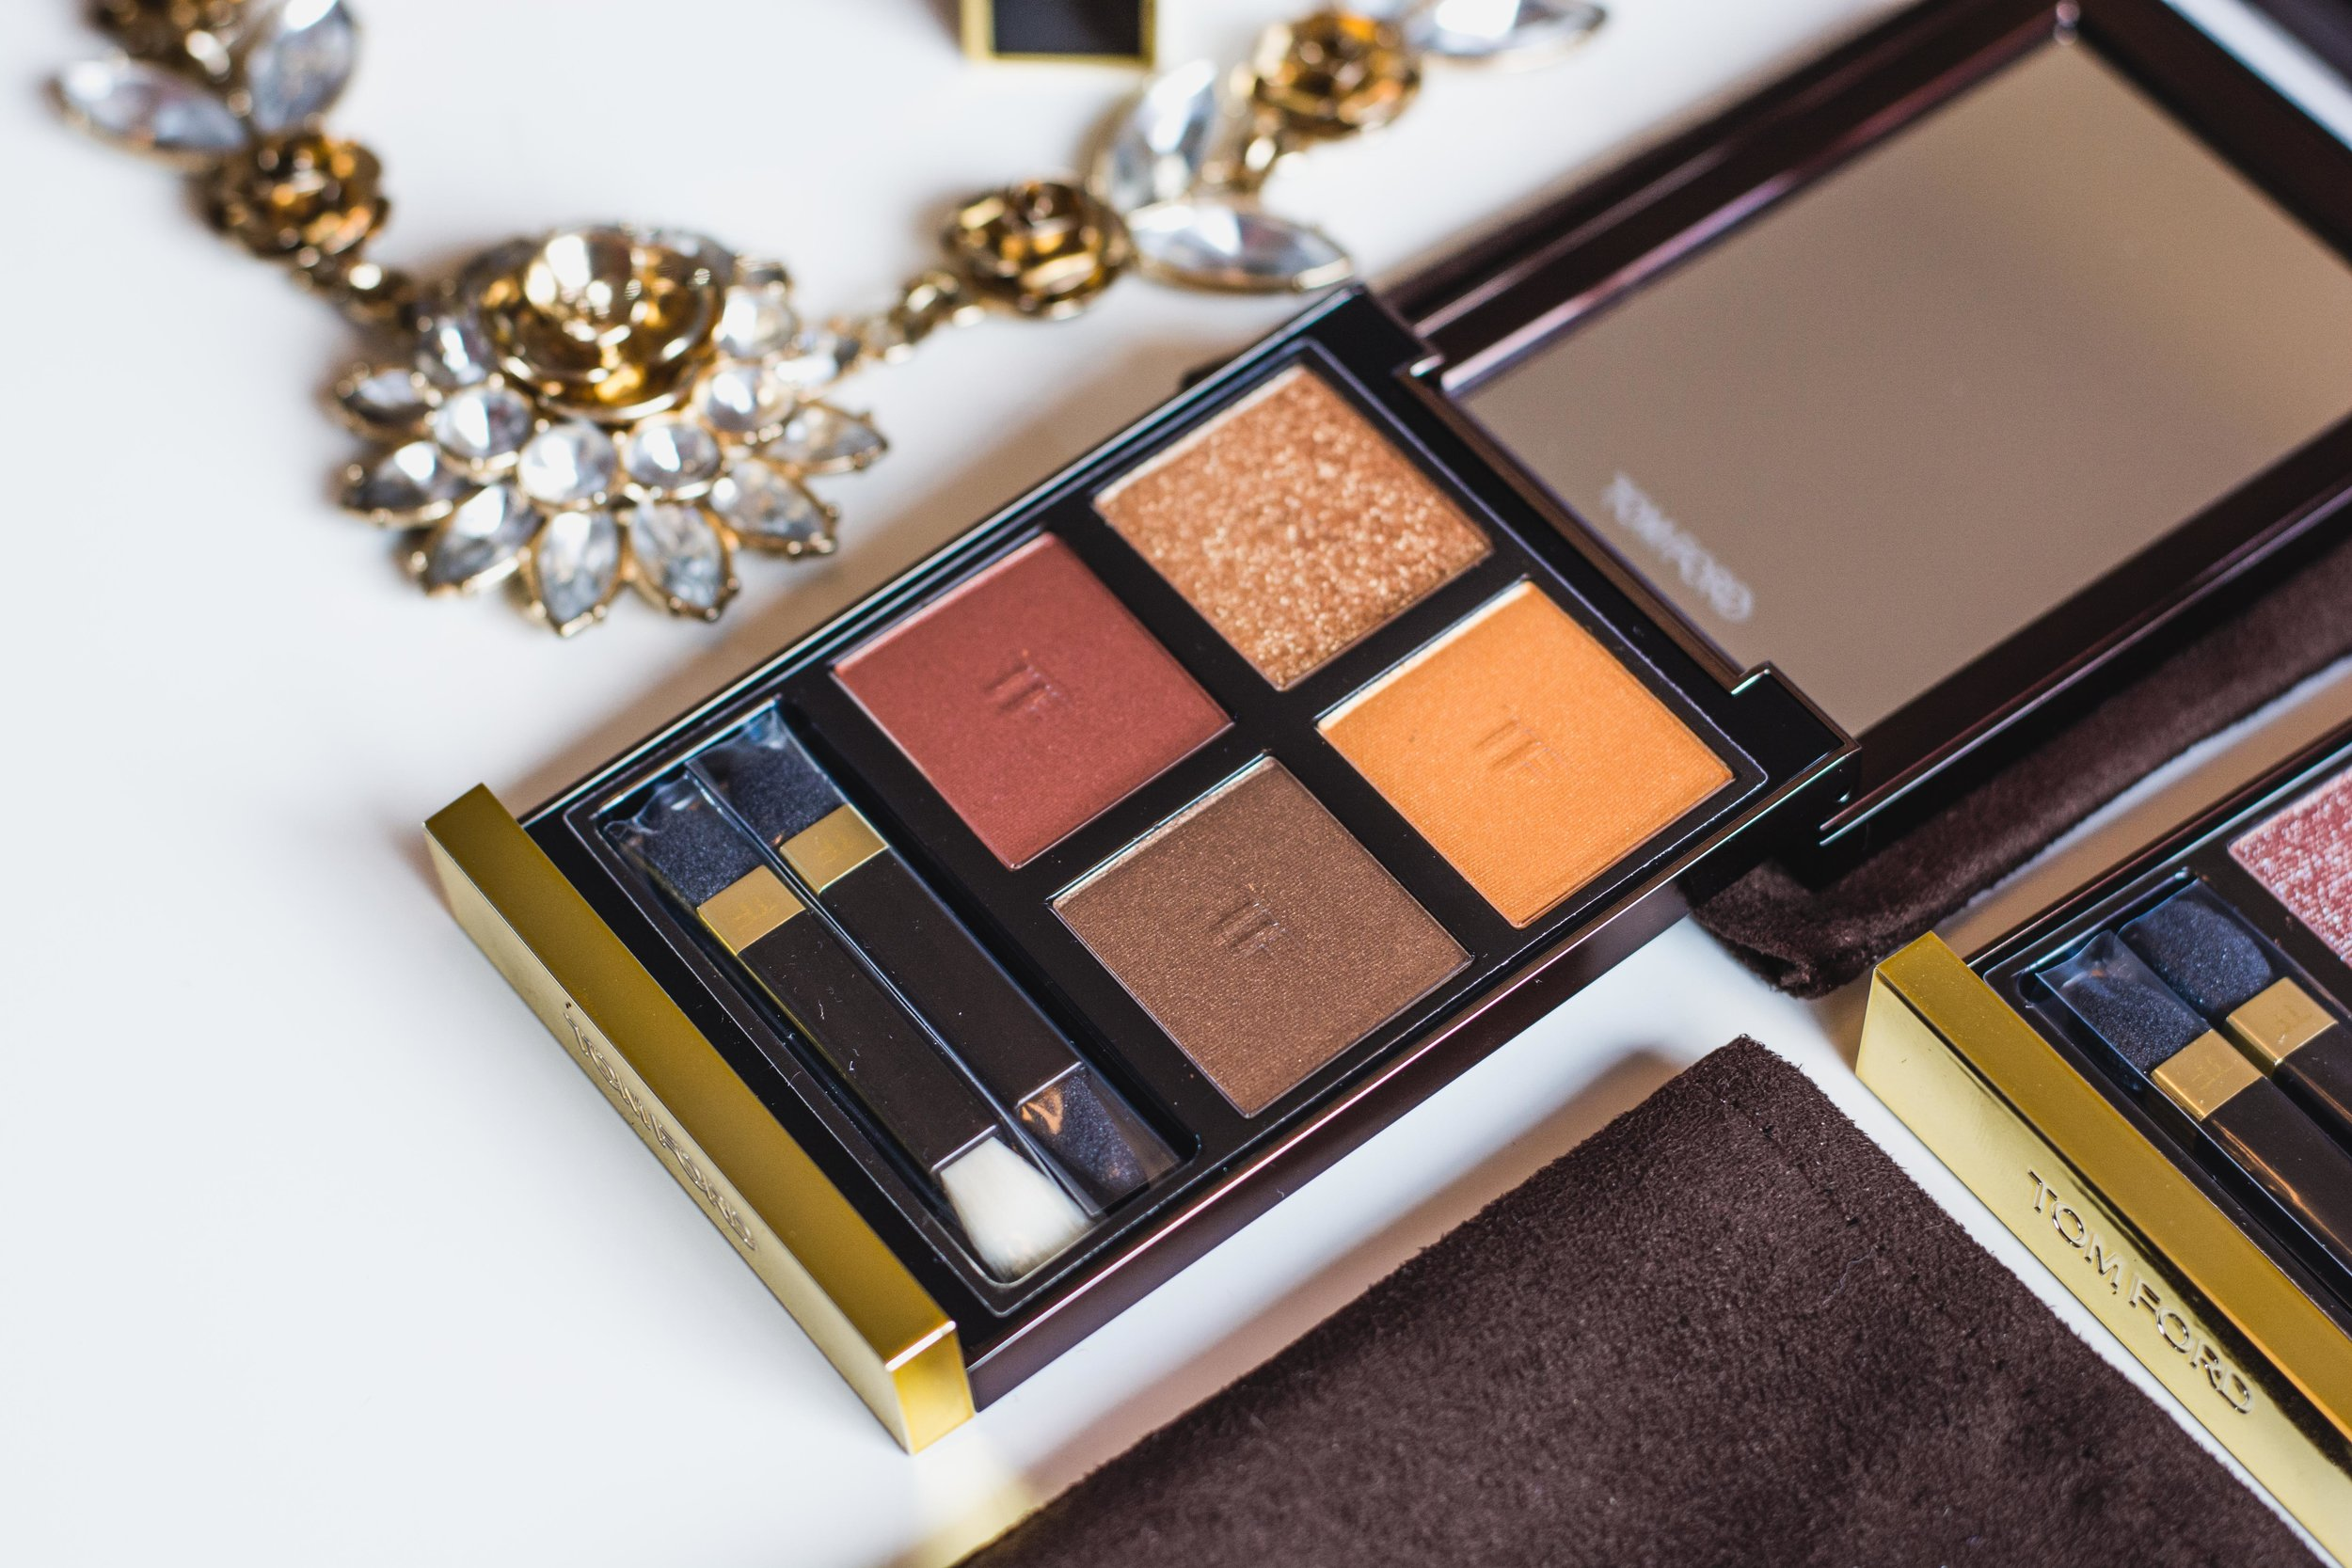 tom-ford-eye-quad_review_swatches-philippines_2019-4.jpg